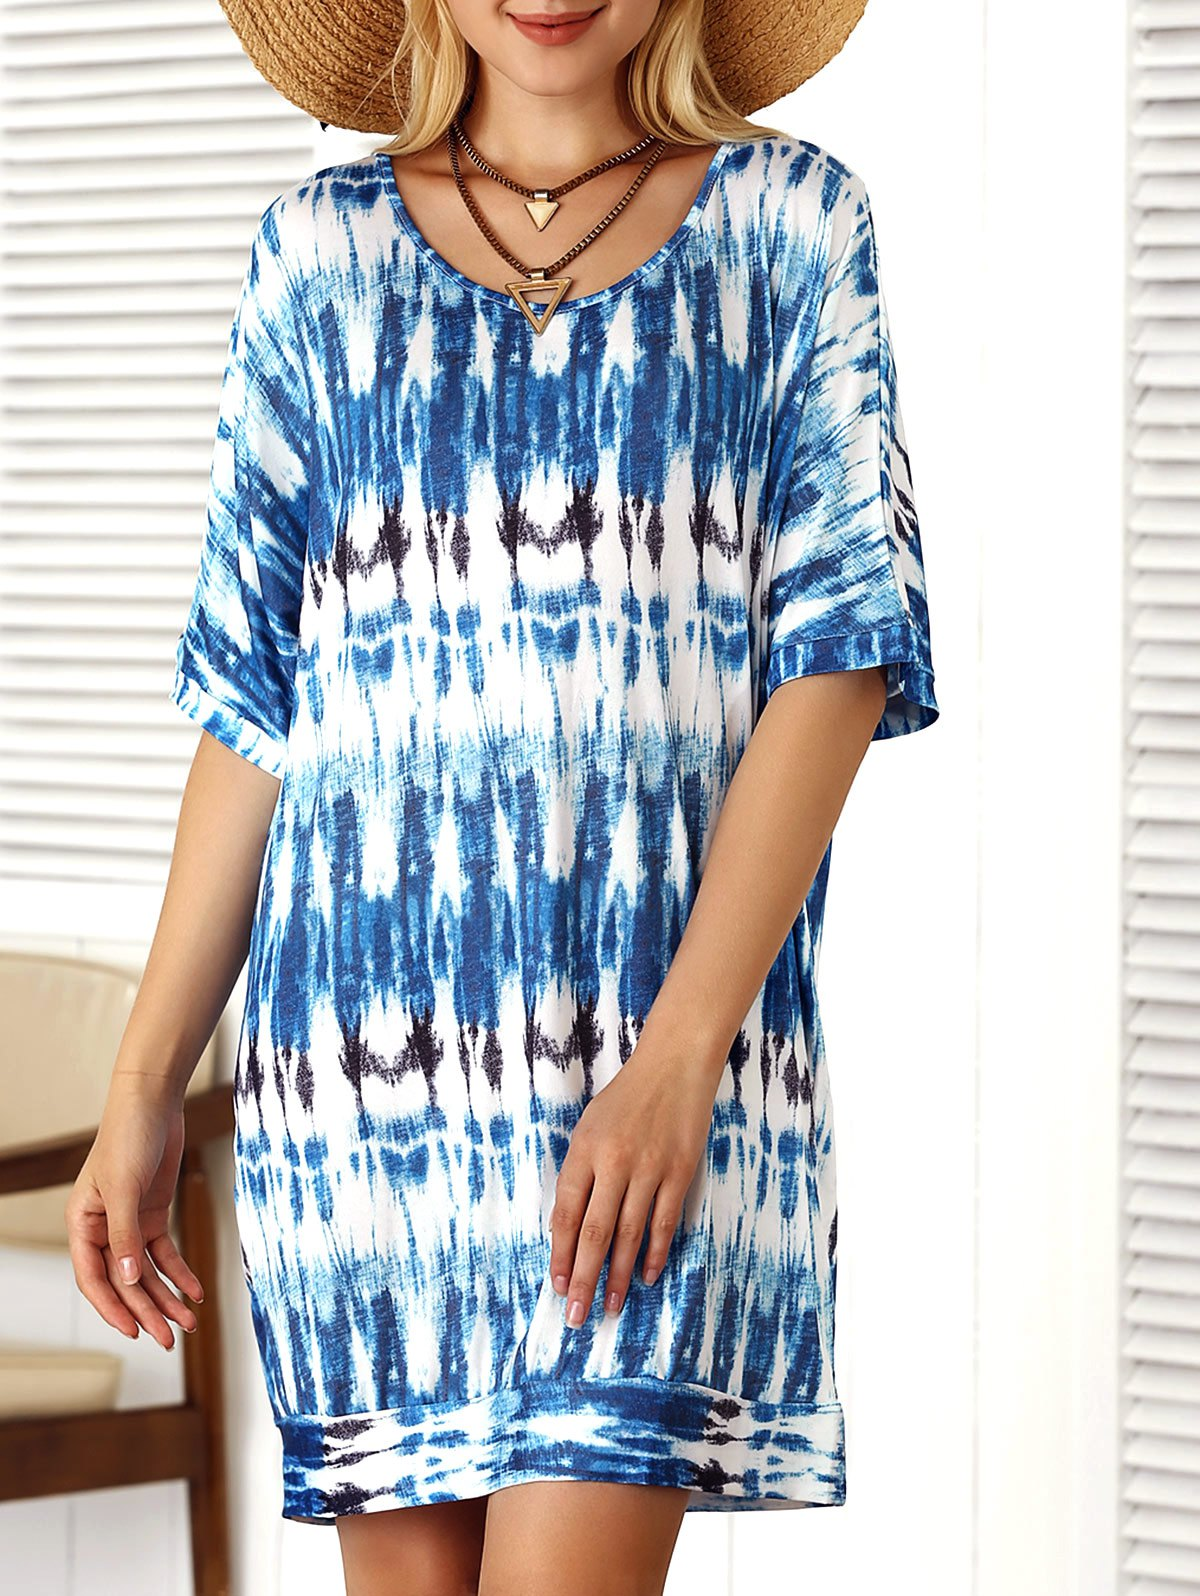 Scoop Neck Short Sleeve Loose Tie-Dyed Dress